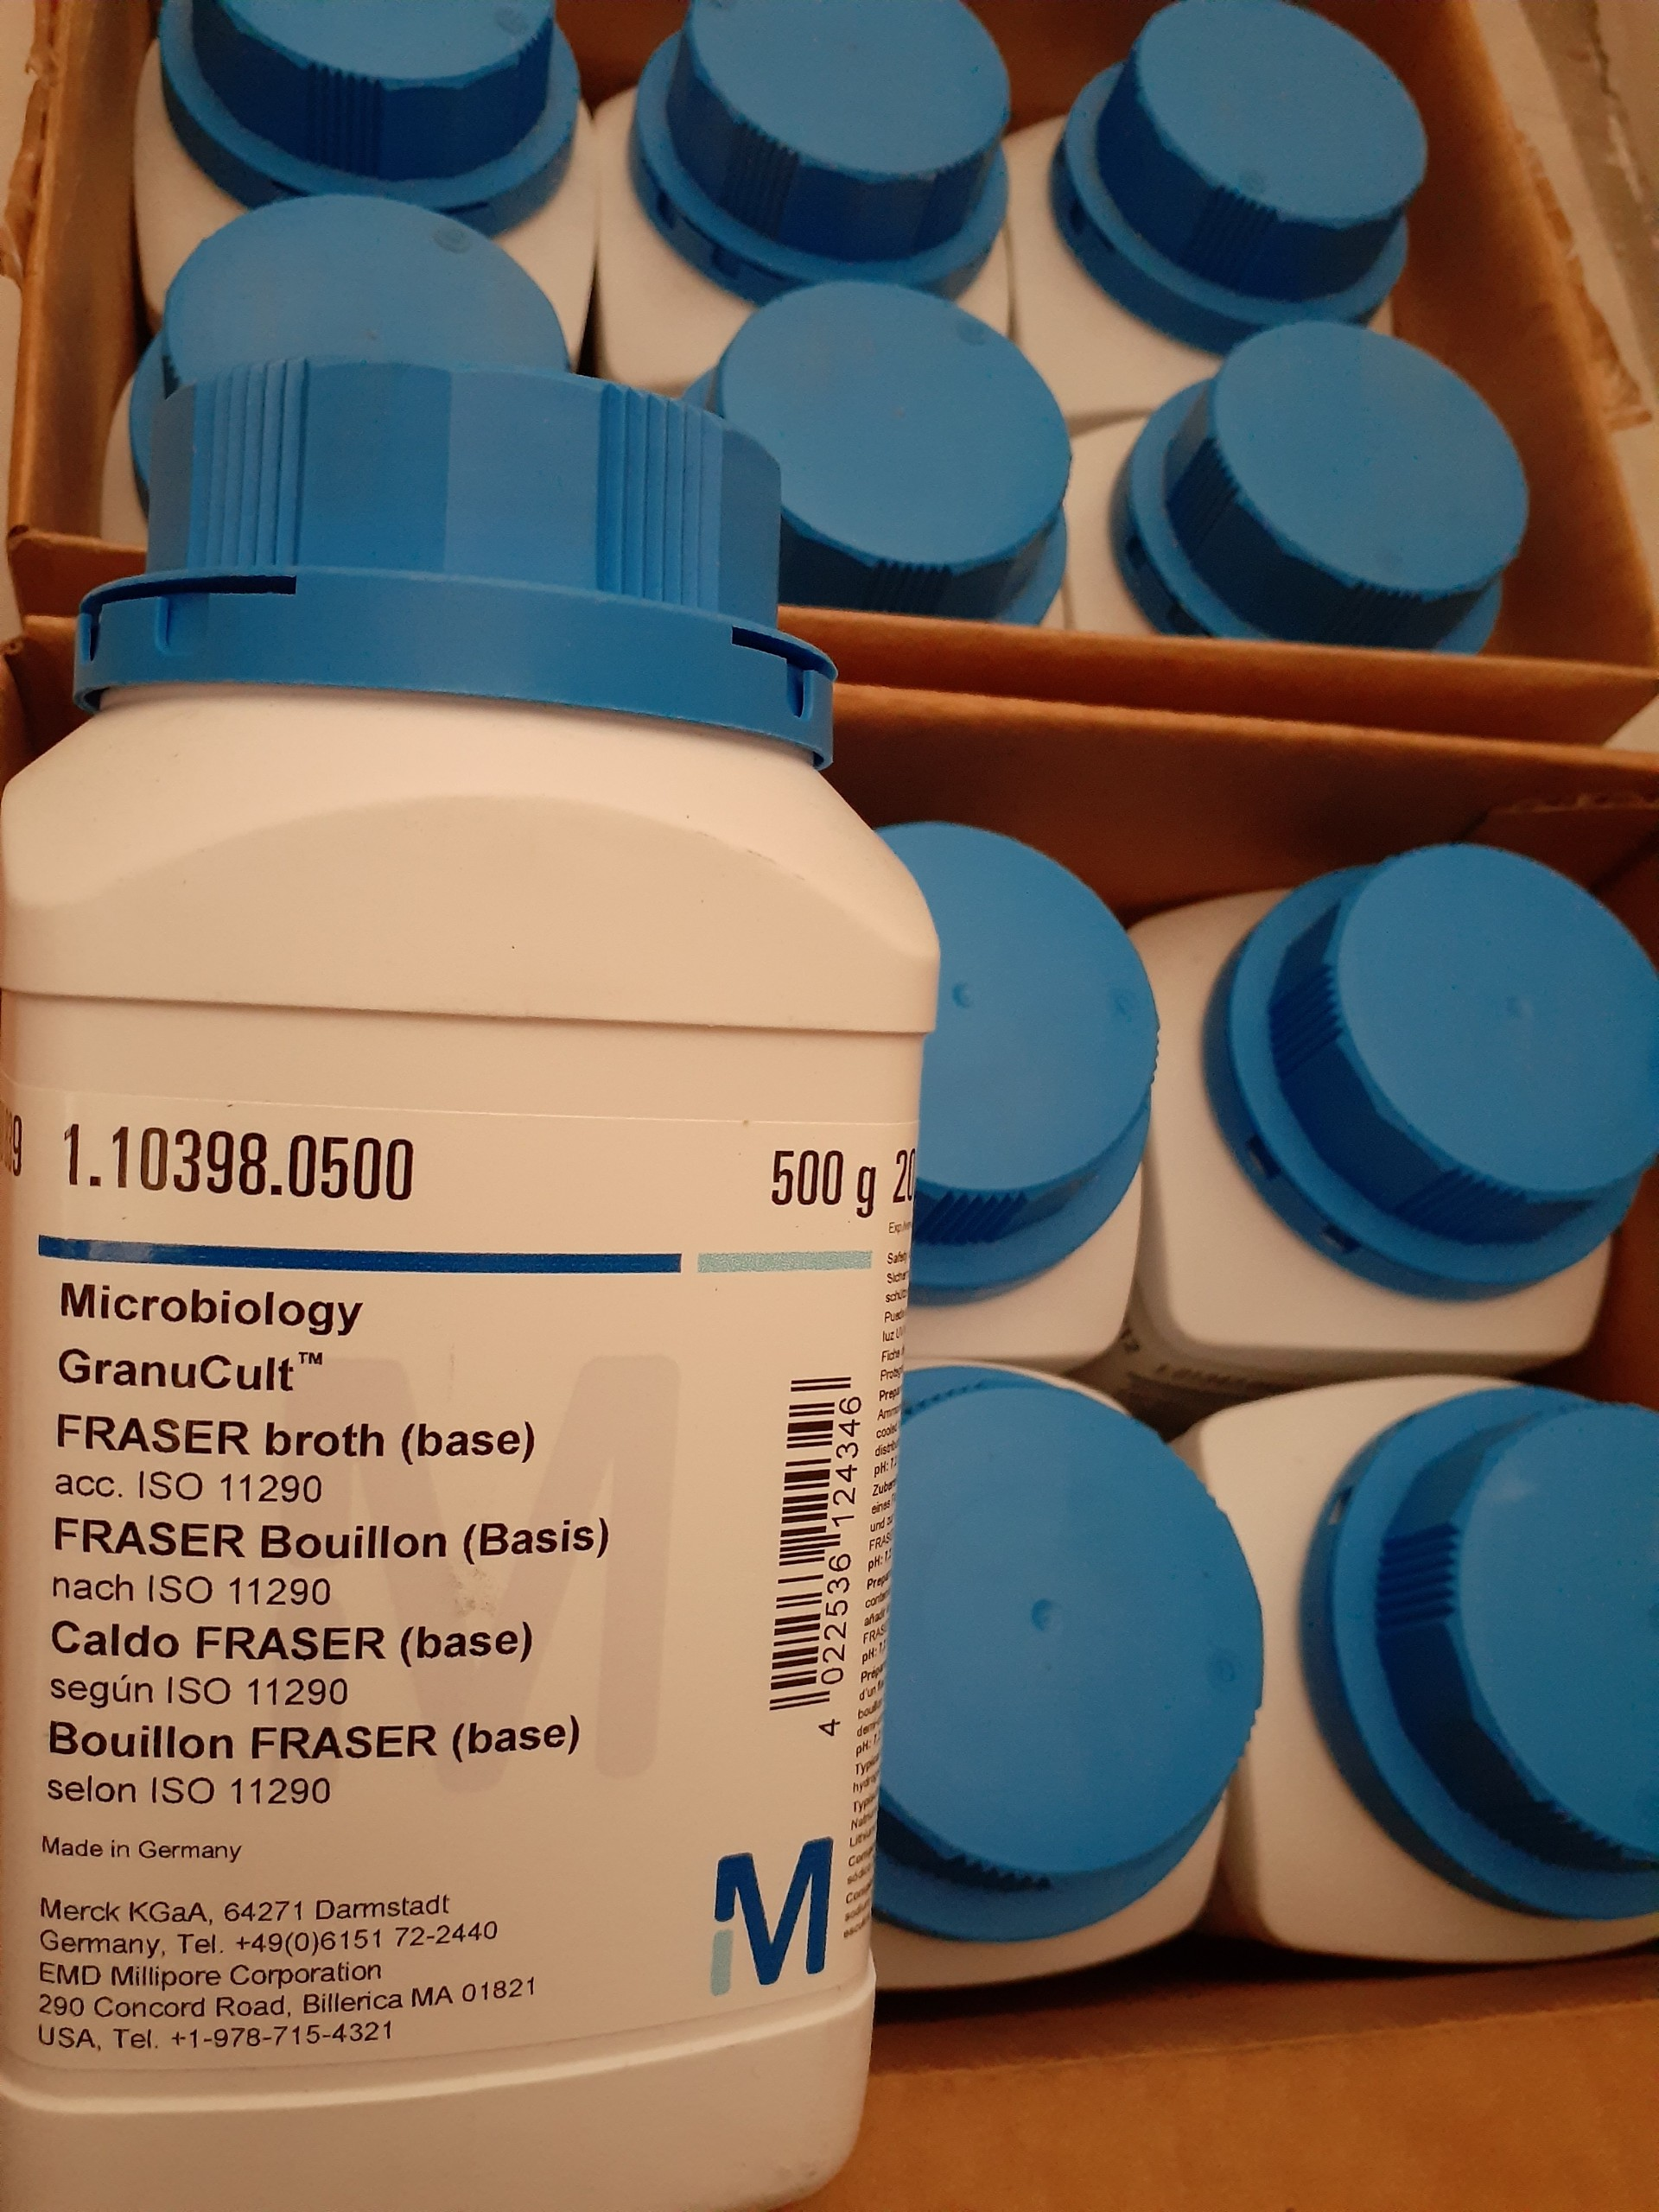 FRASER broth (base) acc. ISO 11290 GranuCult ® (Merck) | 1103980500